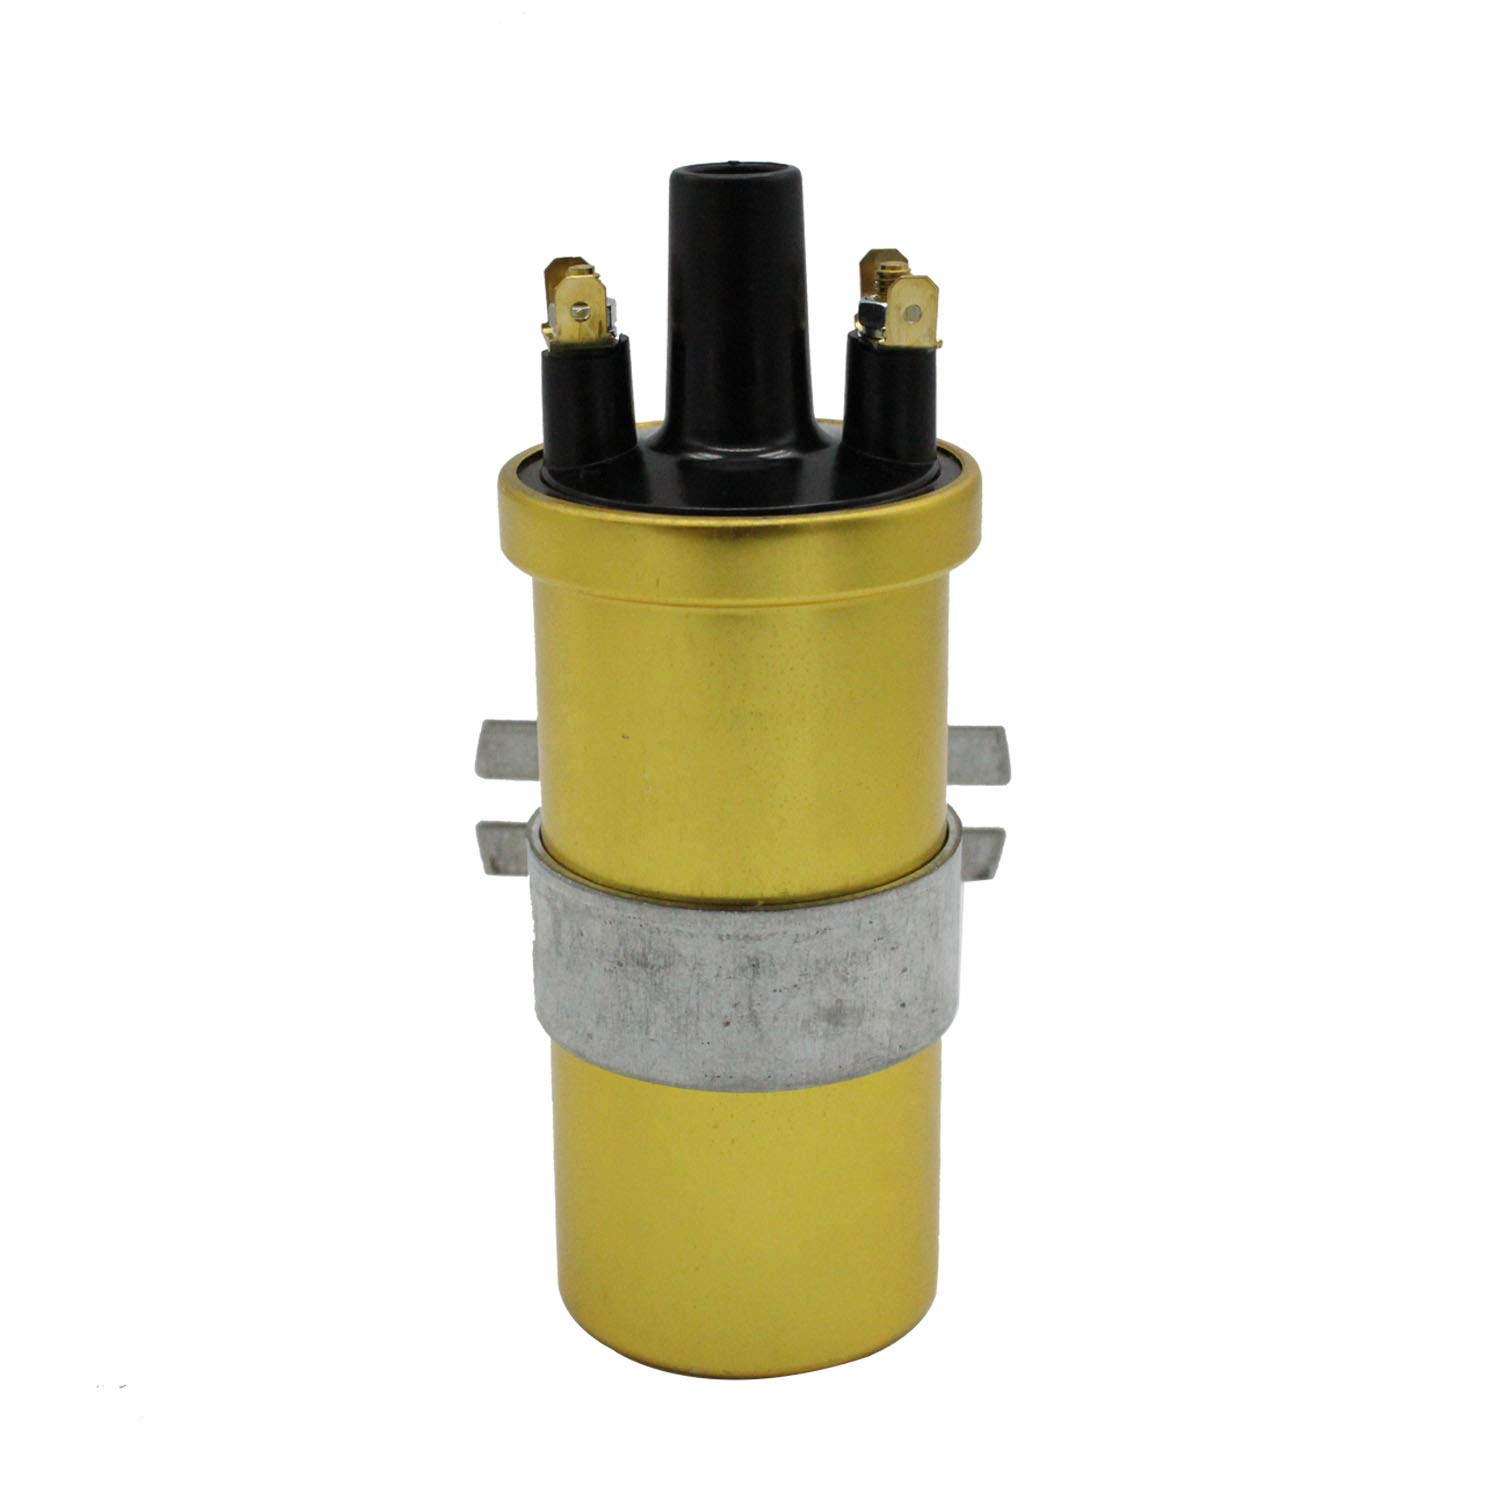 TAKPART 12V Gold Sports Ignition Coil for Lucas